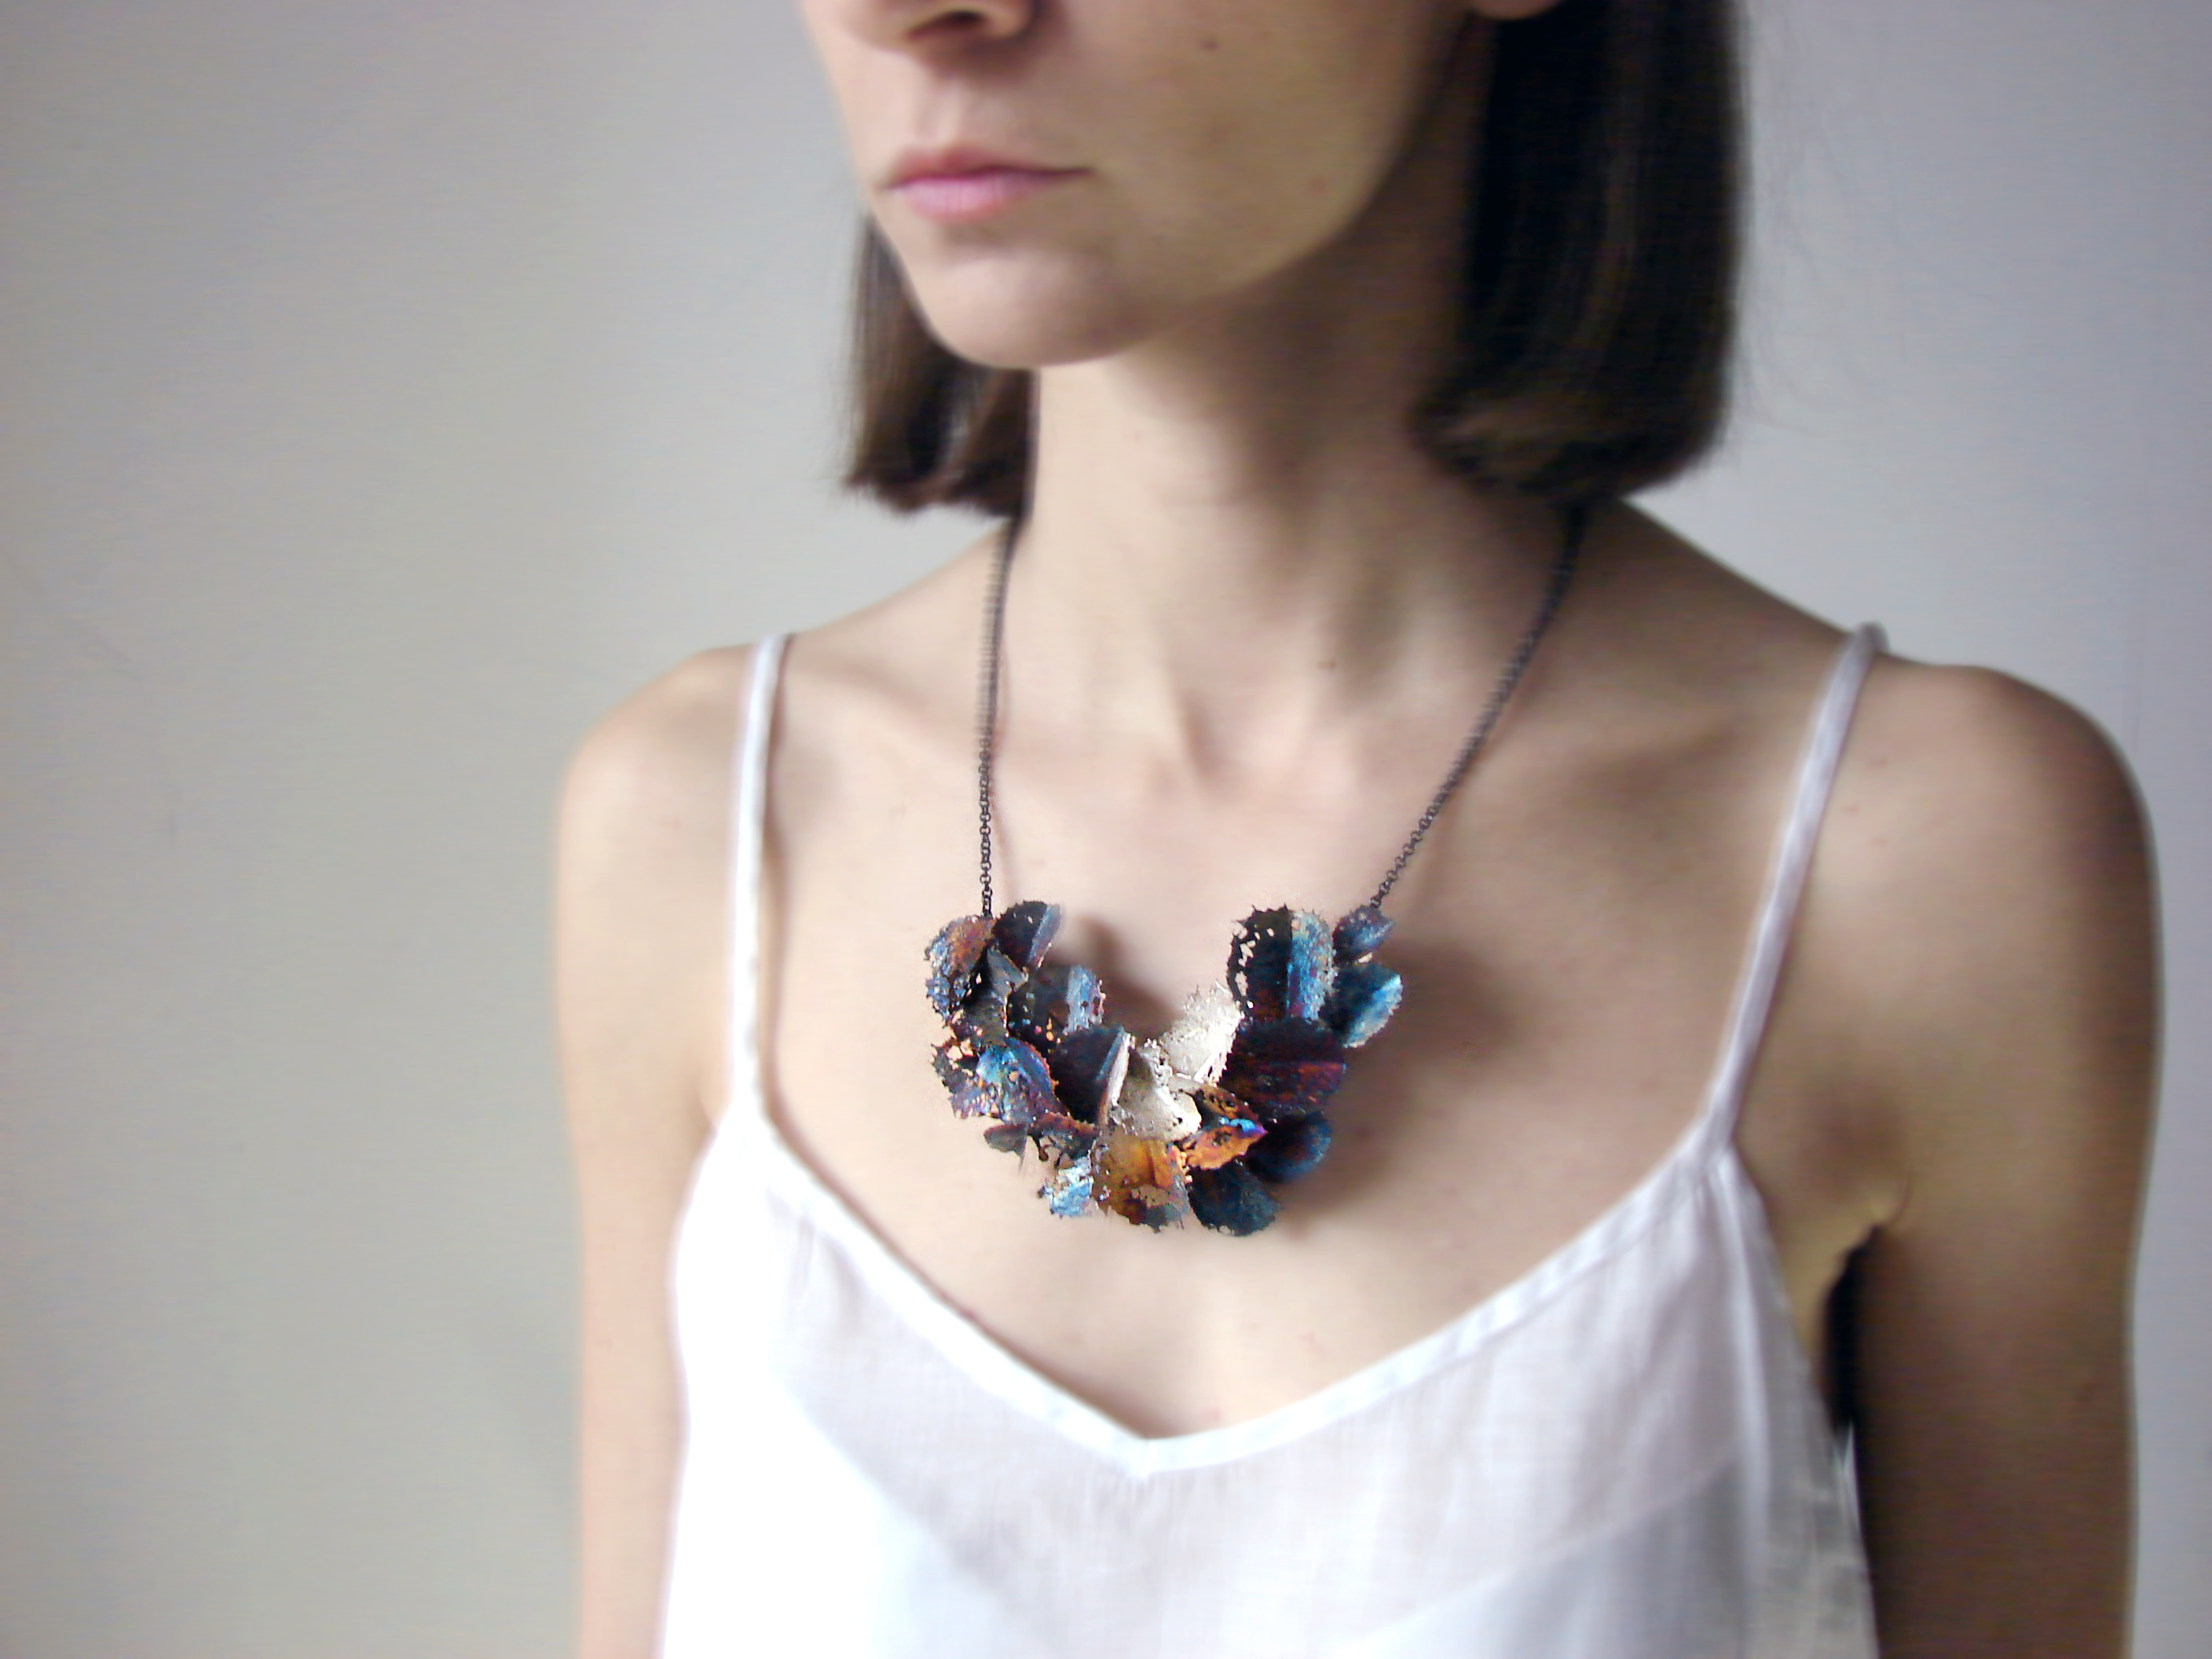 LOOT: MAD About Jewelry in NYC